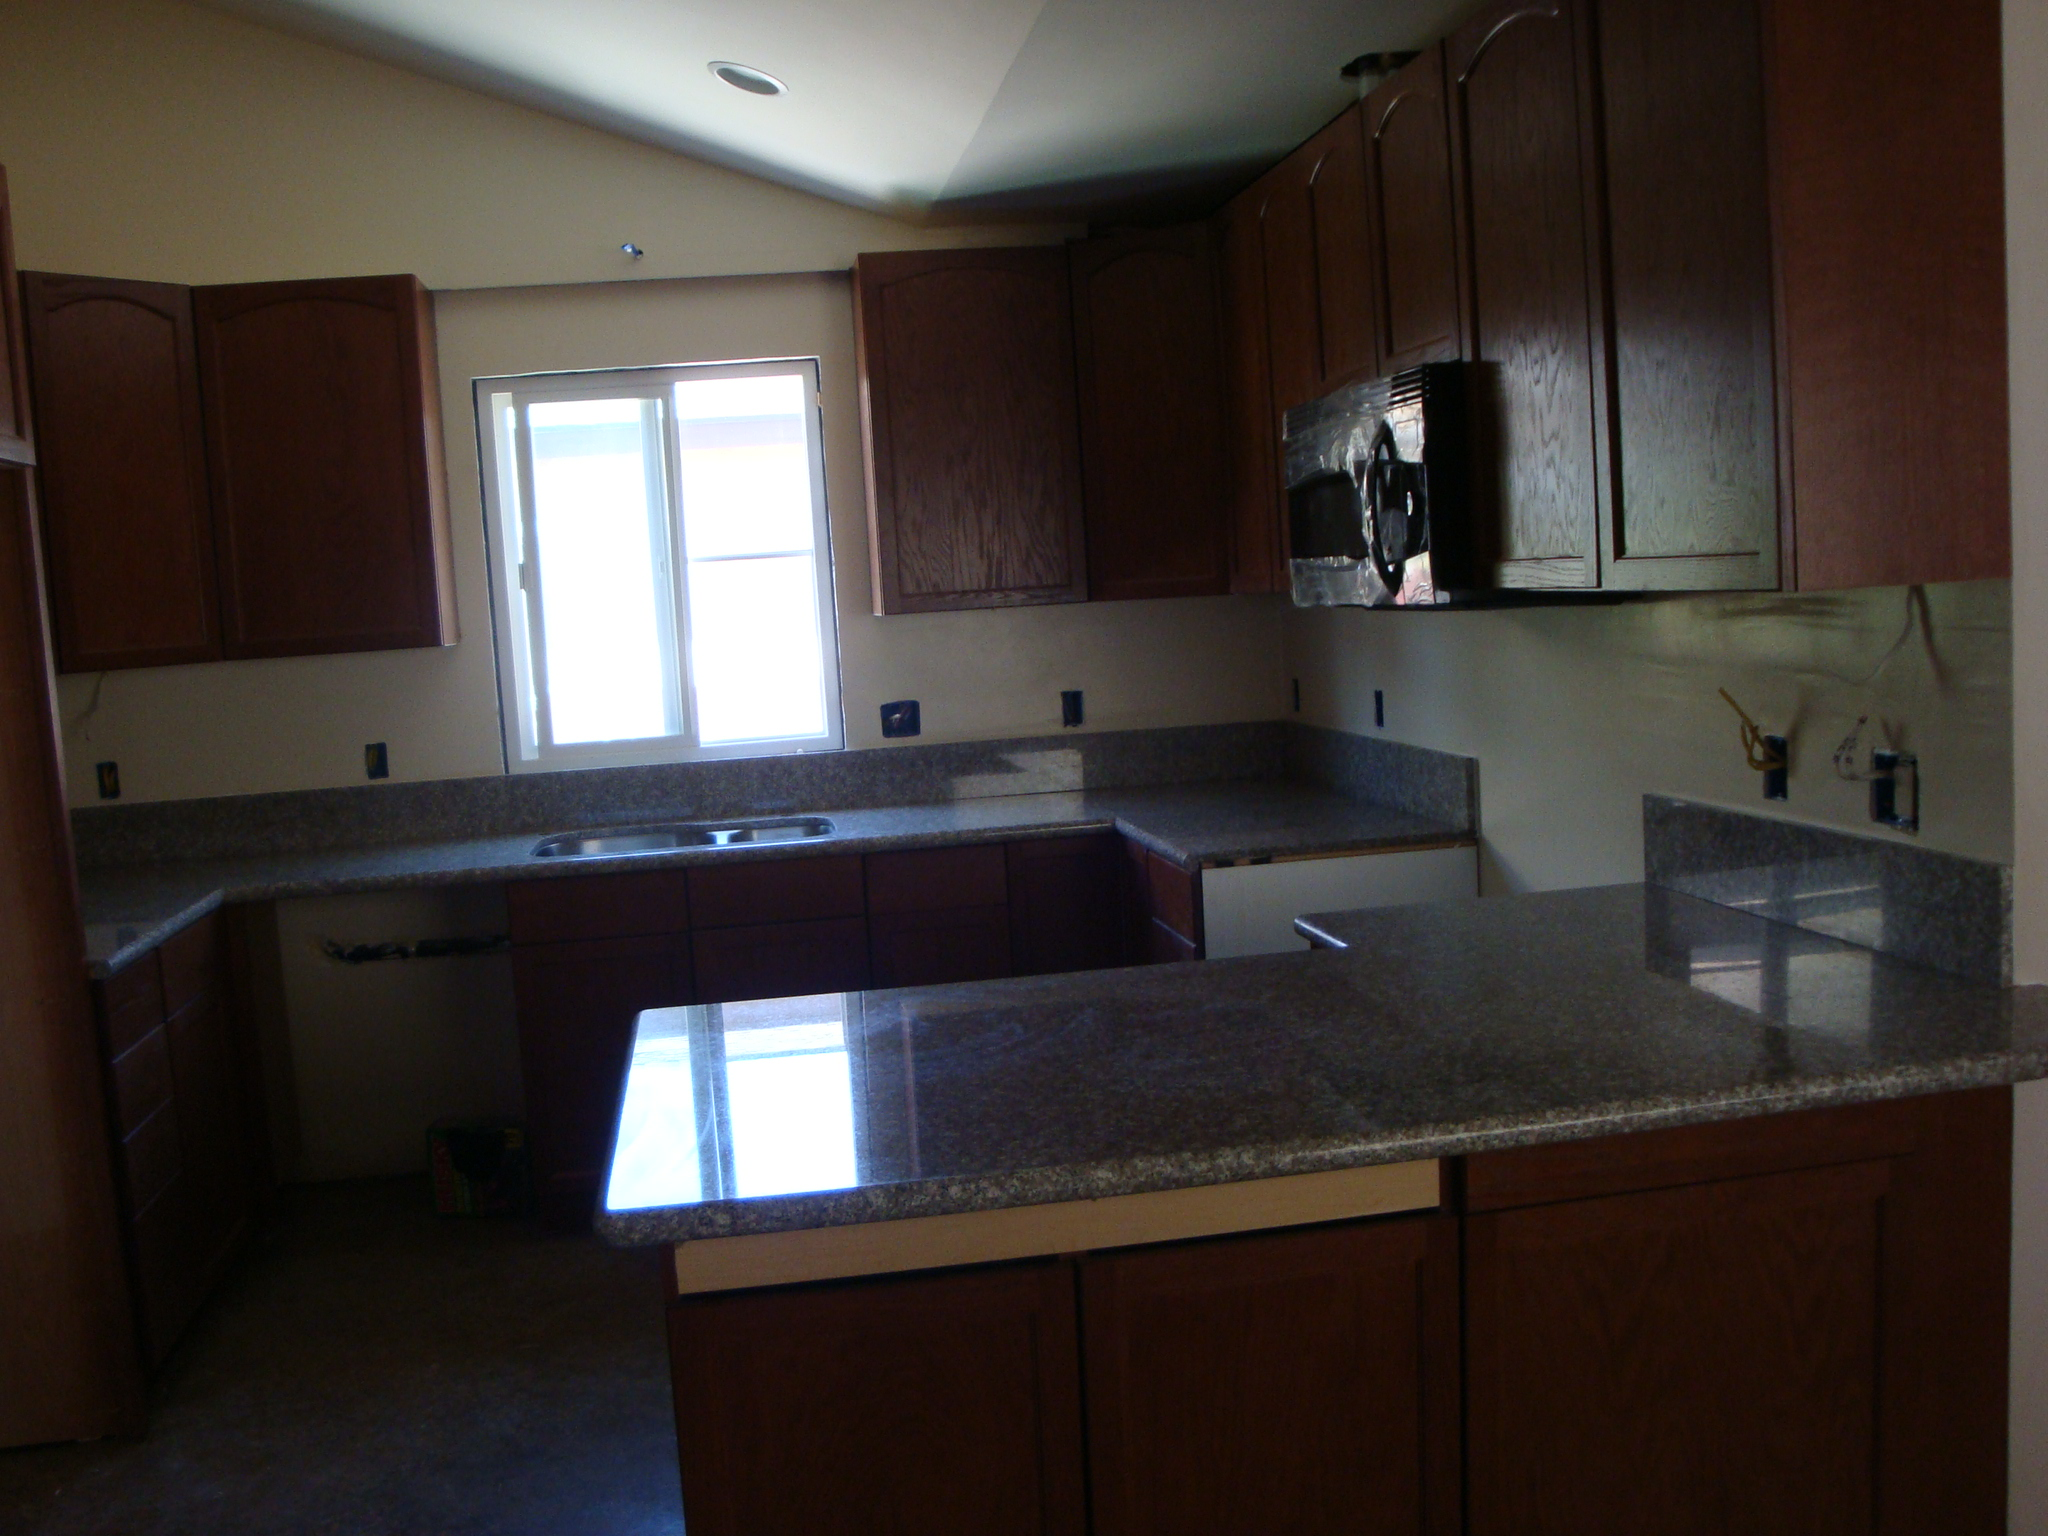 Bainbrook Brown Granite Counter Tops | Santa Clarita